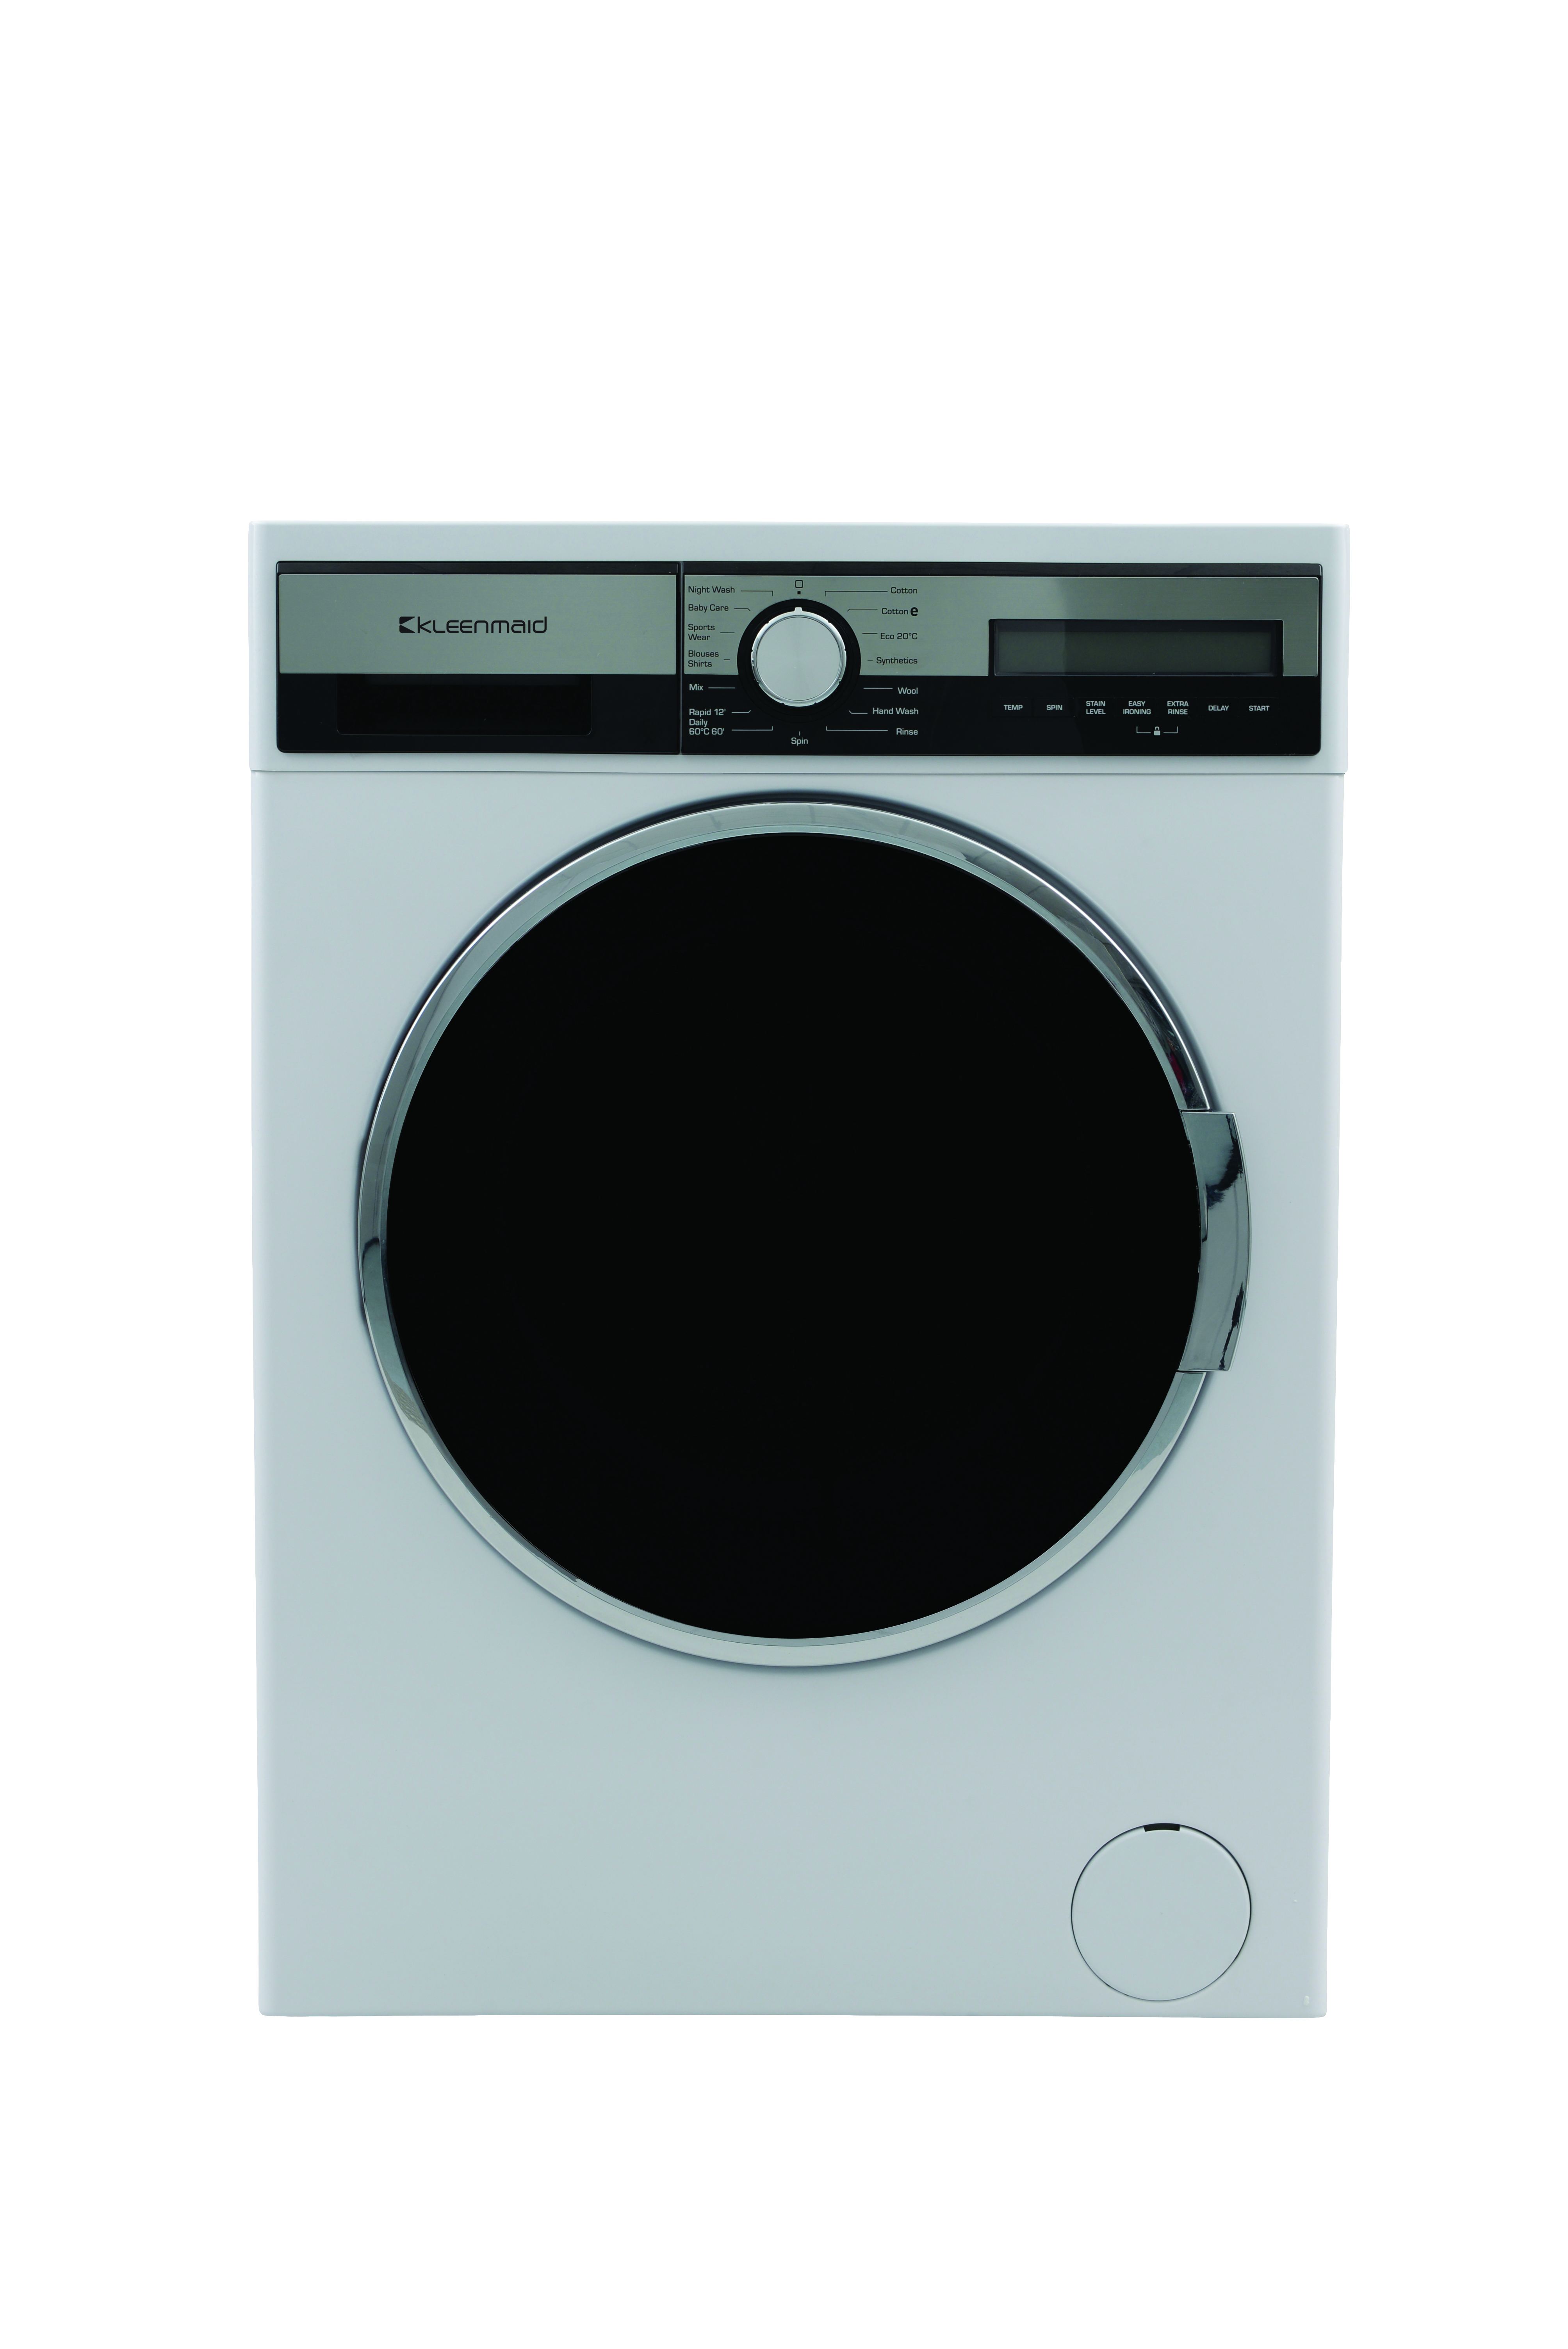 Kleenmaid Washing Machine Wiring Diagram Library Hoover Dryer Quick View 8kg Eco Sensitive